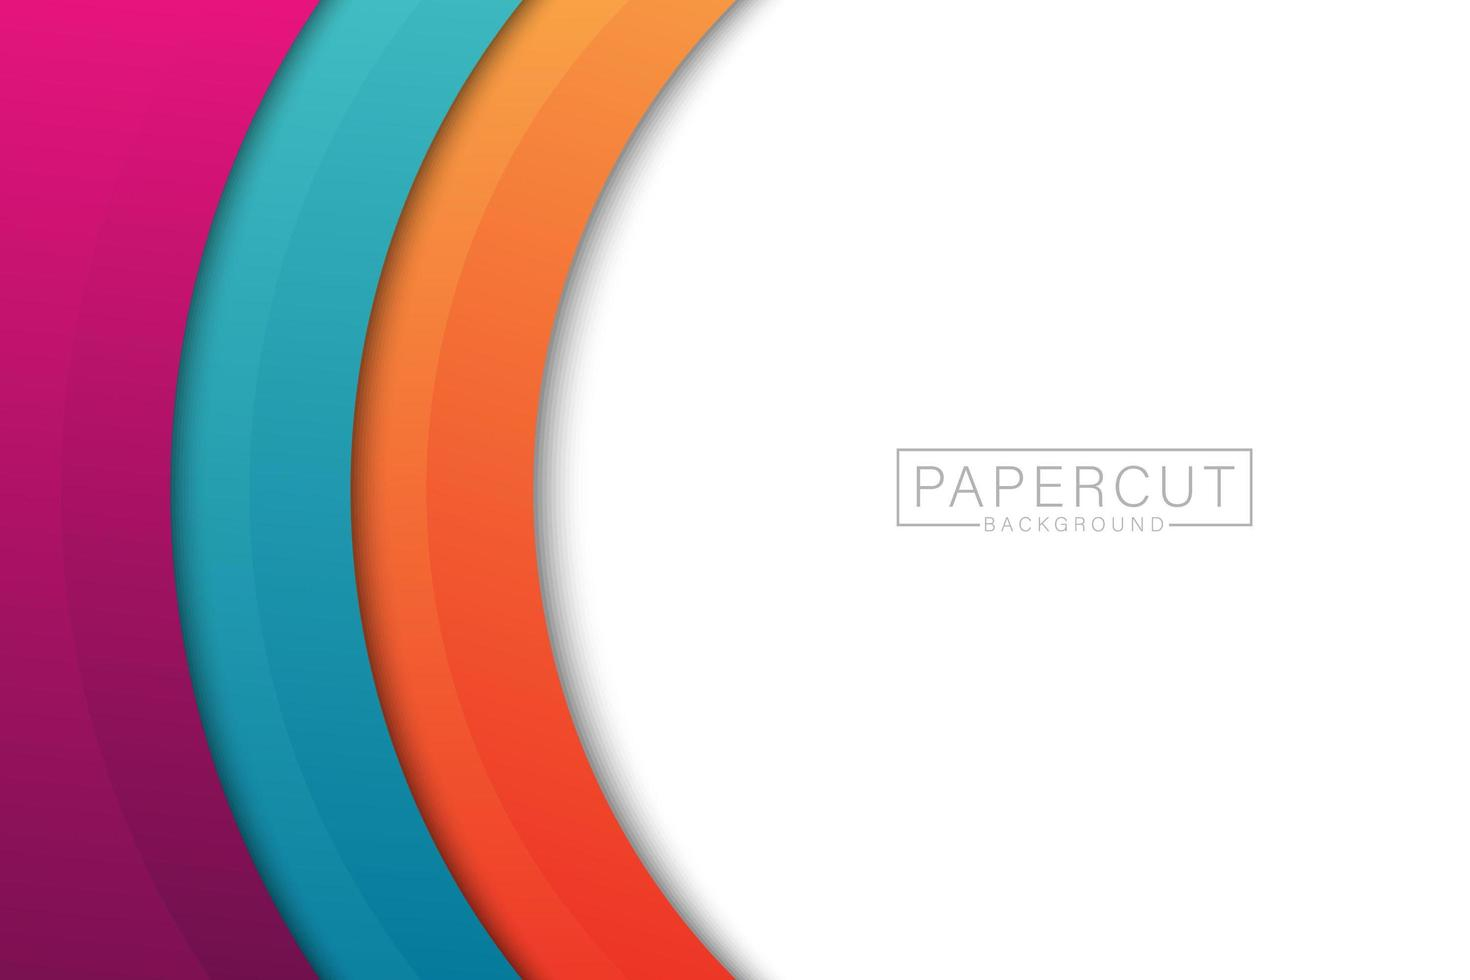 Colorful Curved Border Papercut Design vector